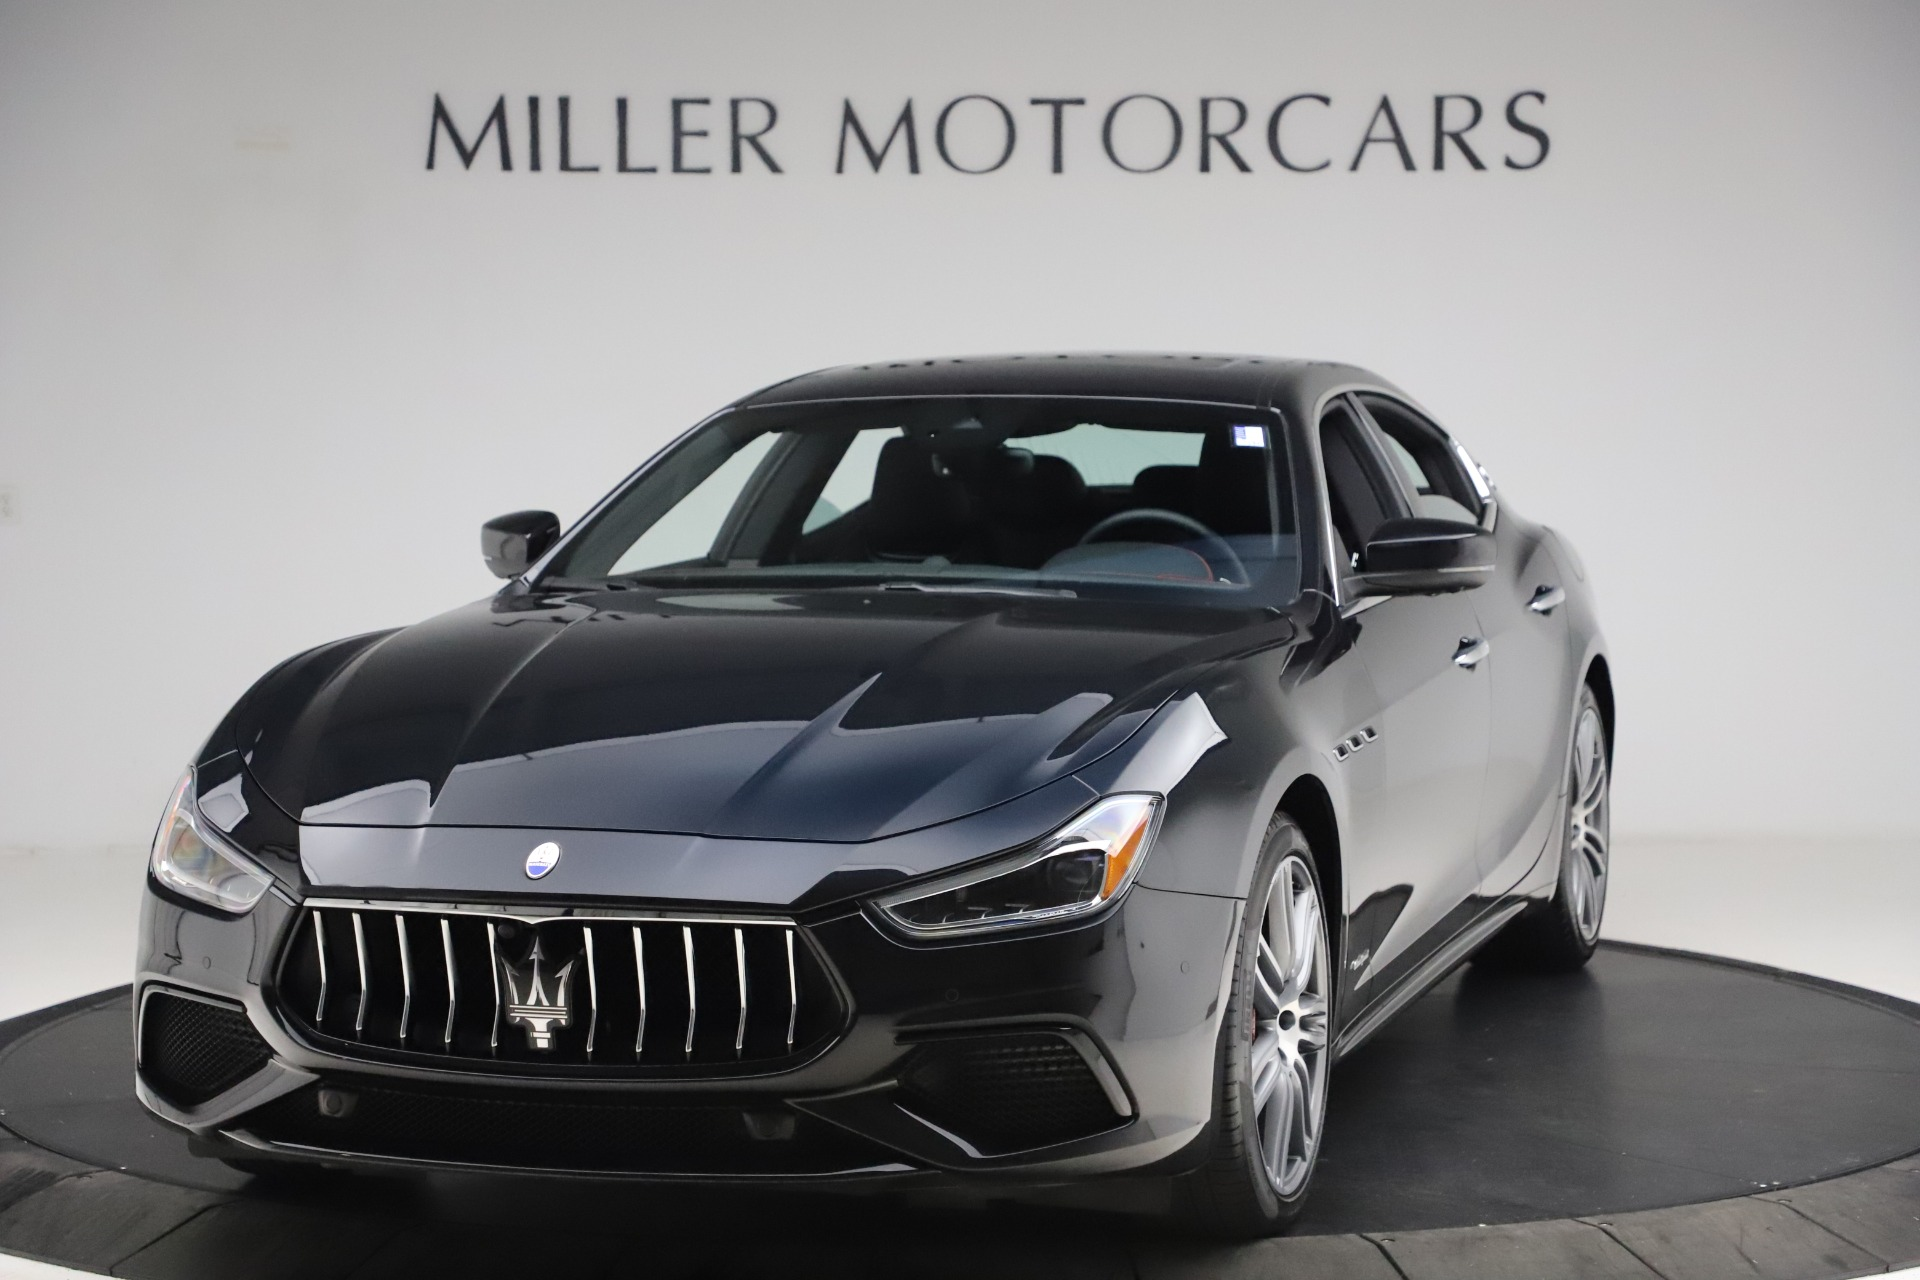 New 2020 Maserati Ghibli S Q4 GranSport for sale Sold at Bugatti of Greenwich in Greenwich CT 06830 1